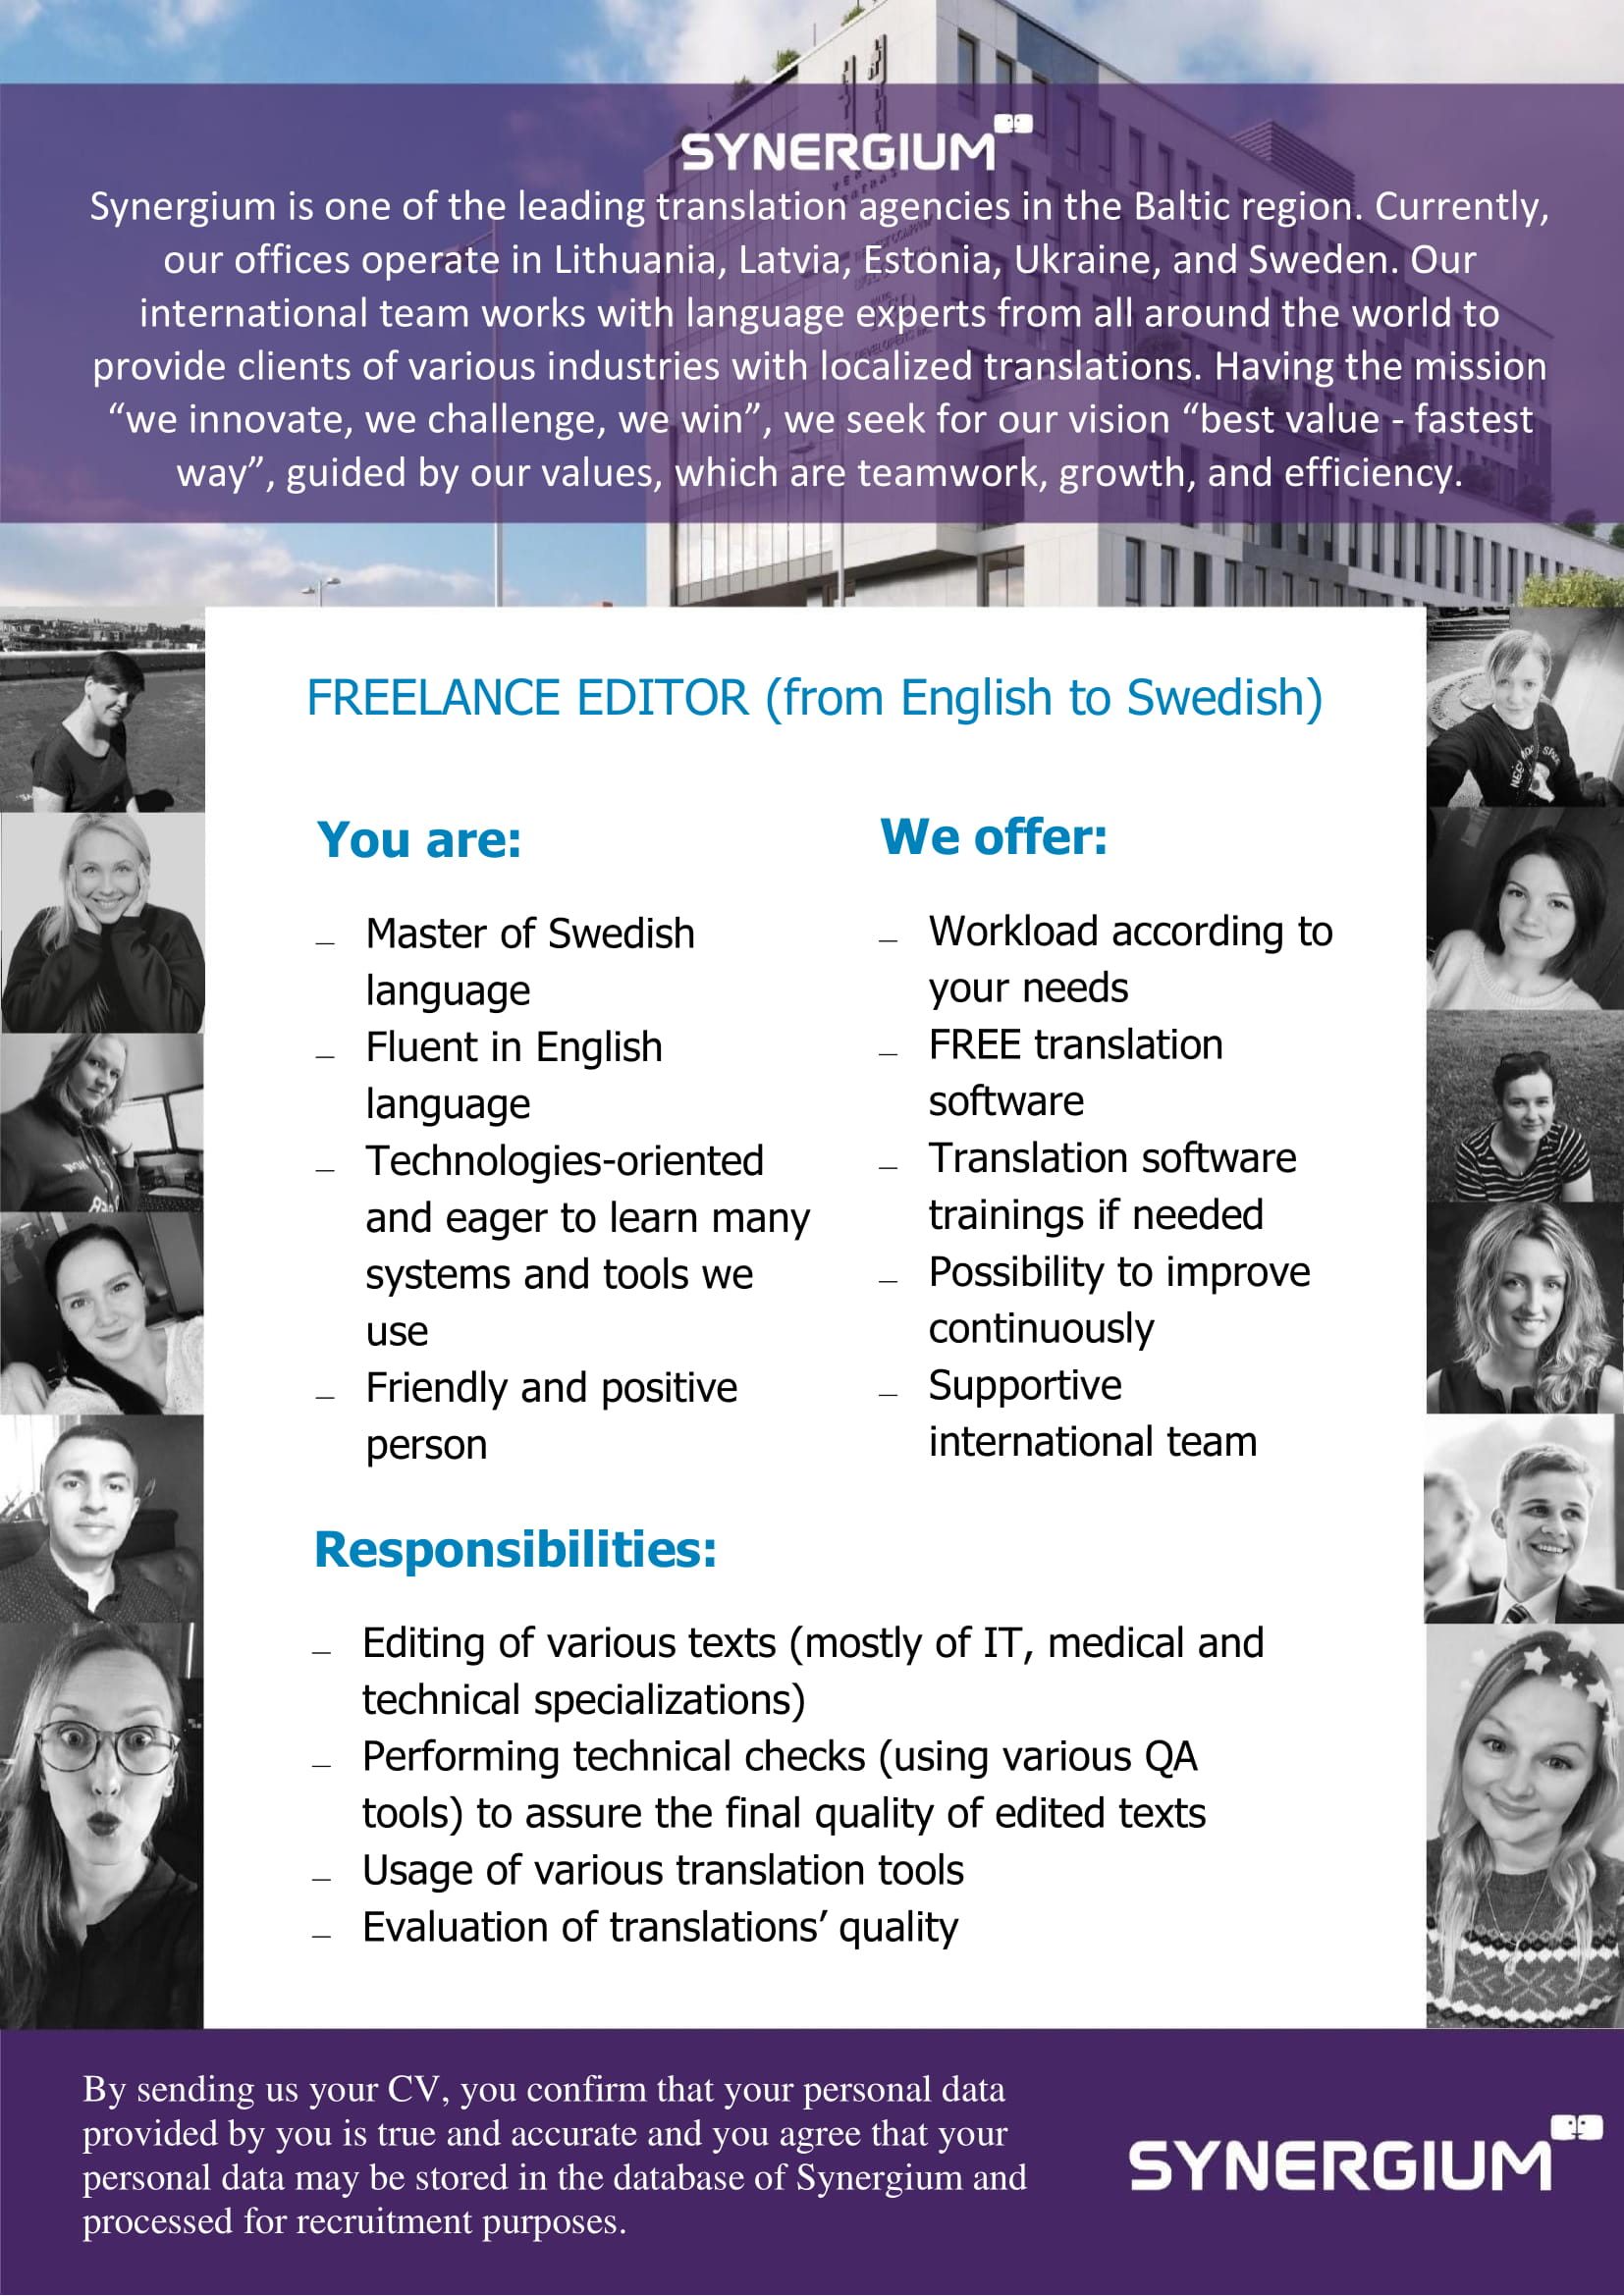 freelance editor from english to swedish job advertisement synergium